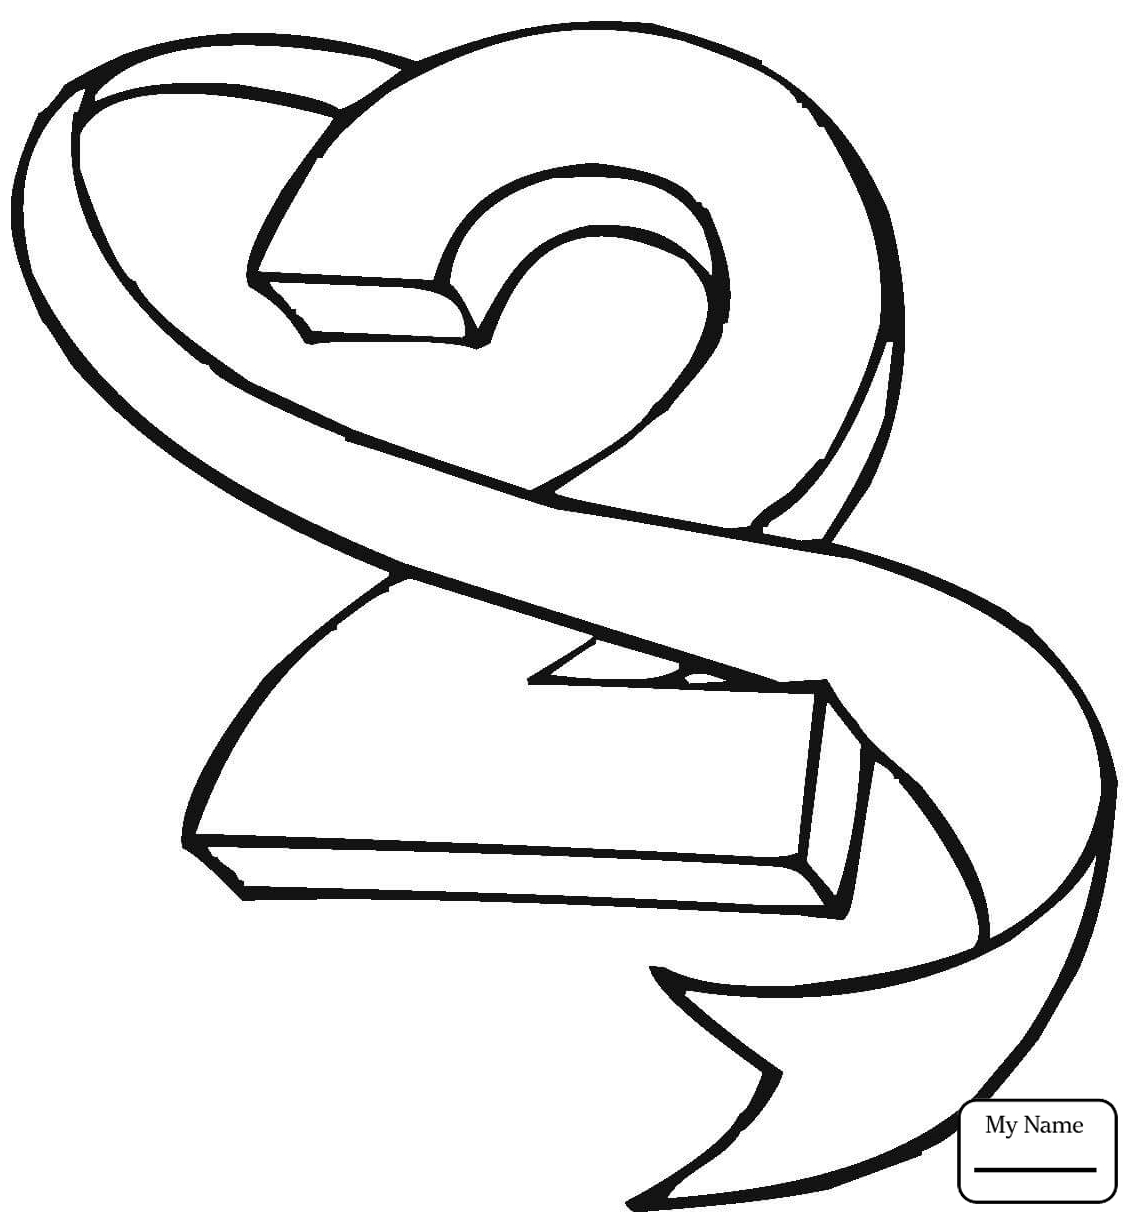 0 coloring pages number 0 coloring page free download on clipartmag coloring pages 0